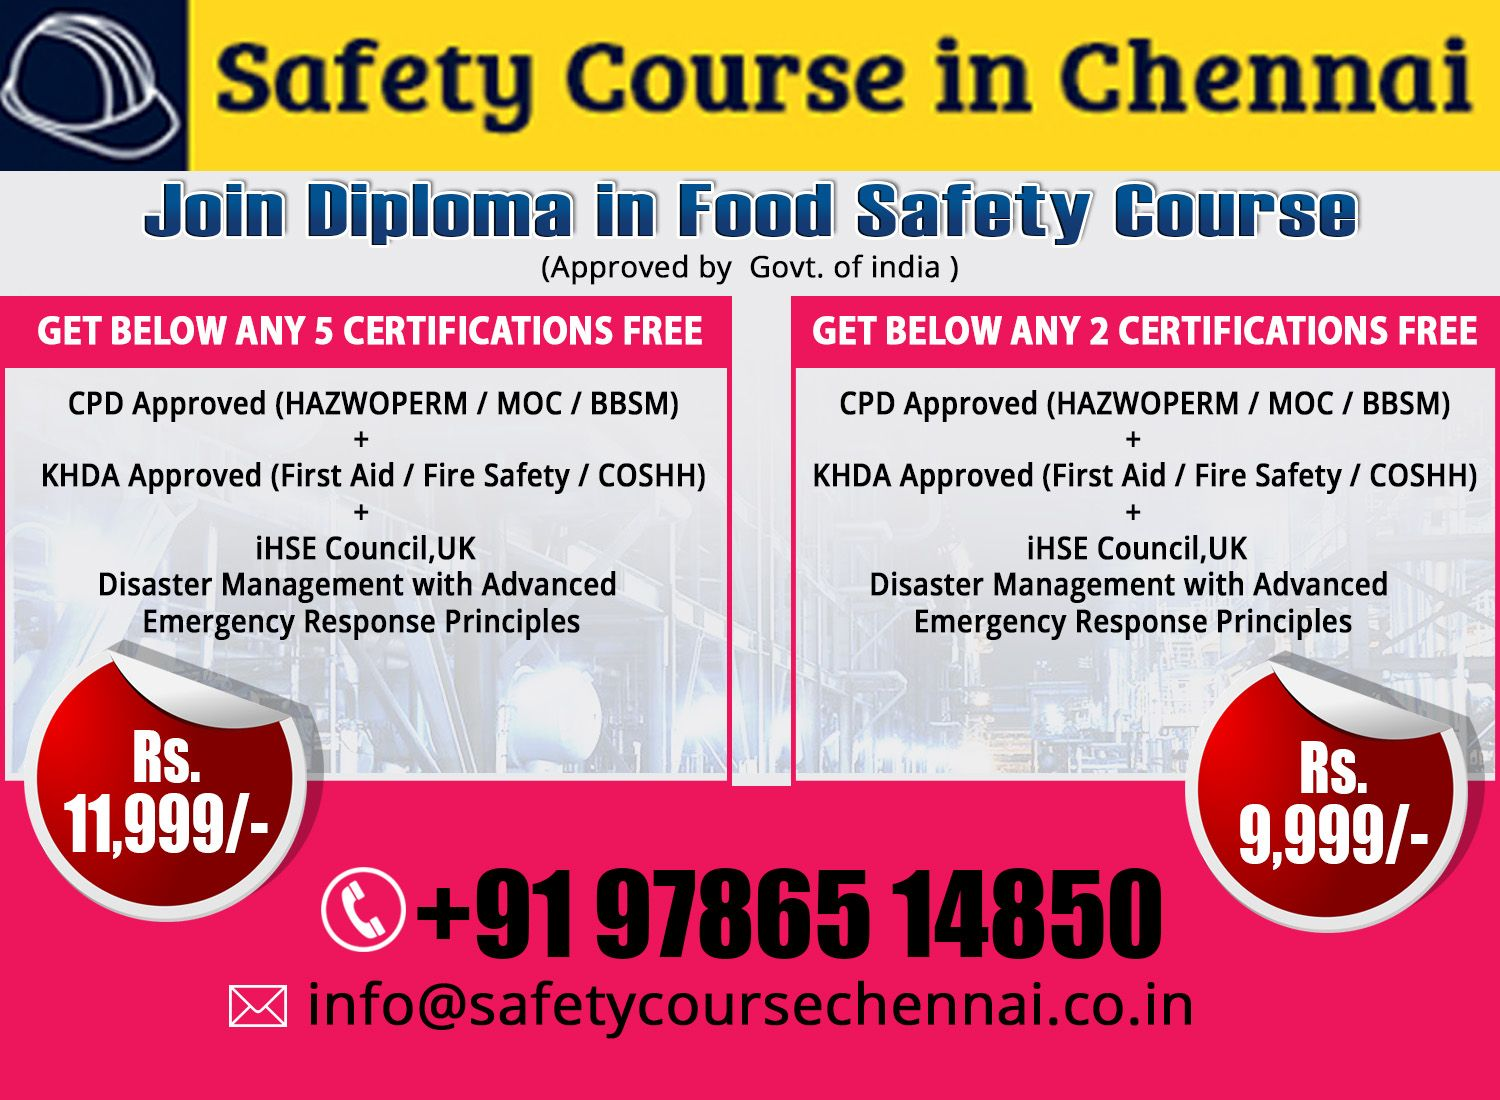 Health and Safety Course in Chennai Safety courses, Food